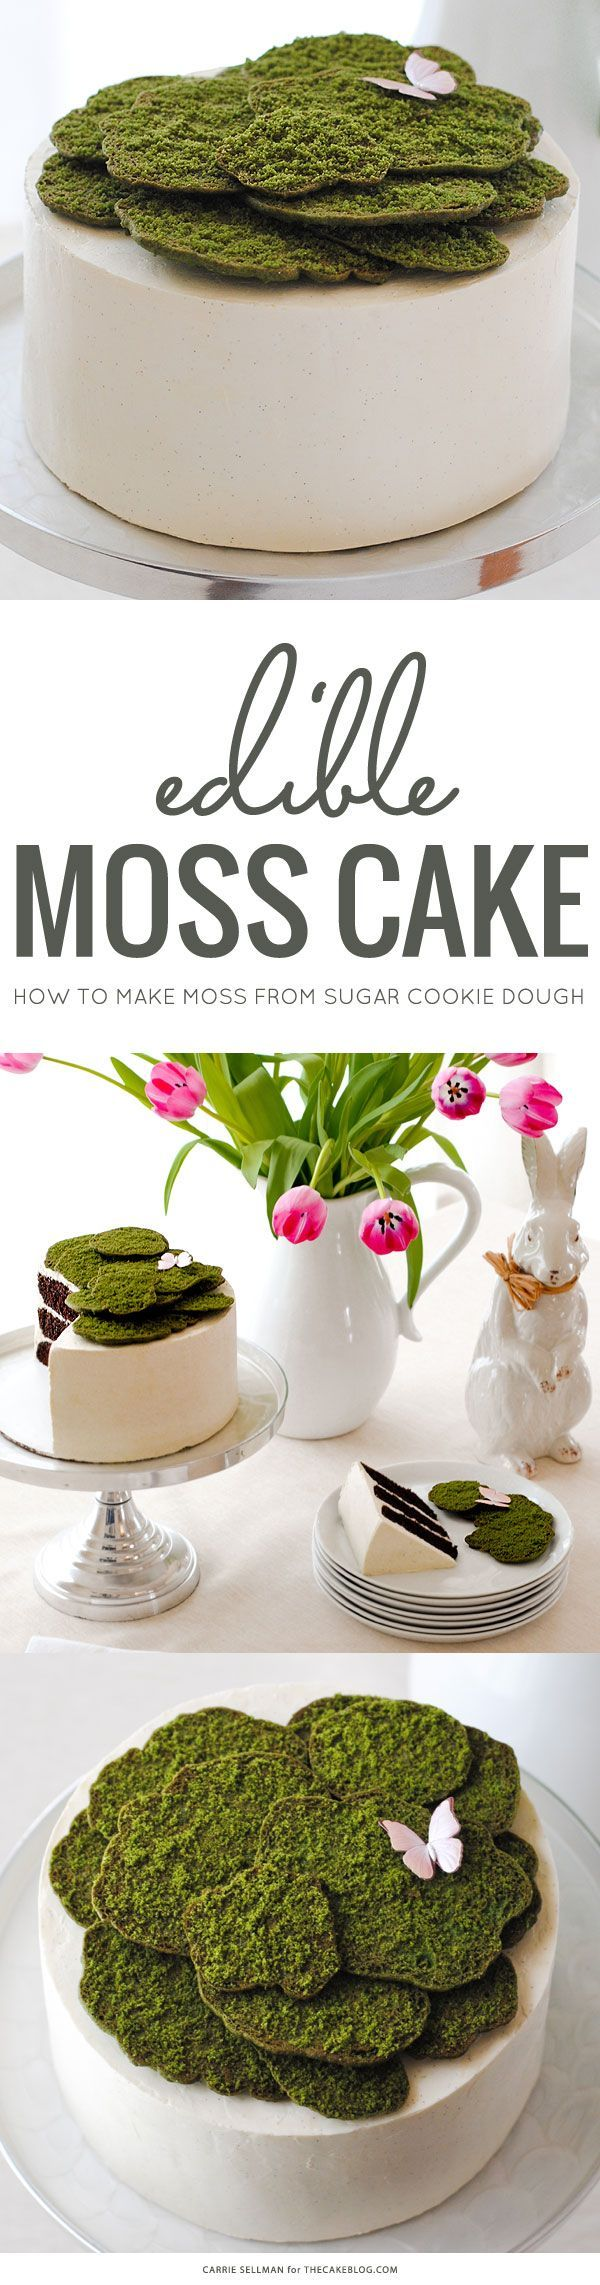 Edible Moss Cake Decoration : 1000+ images about Spring/Easter Desserts on Pinterest ...